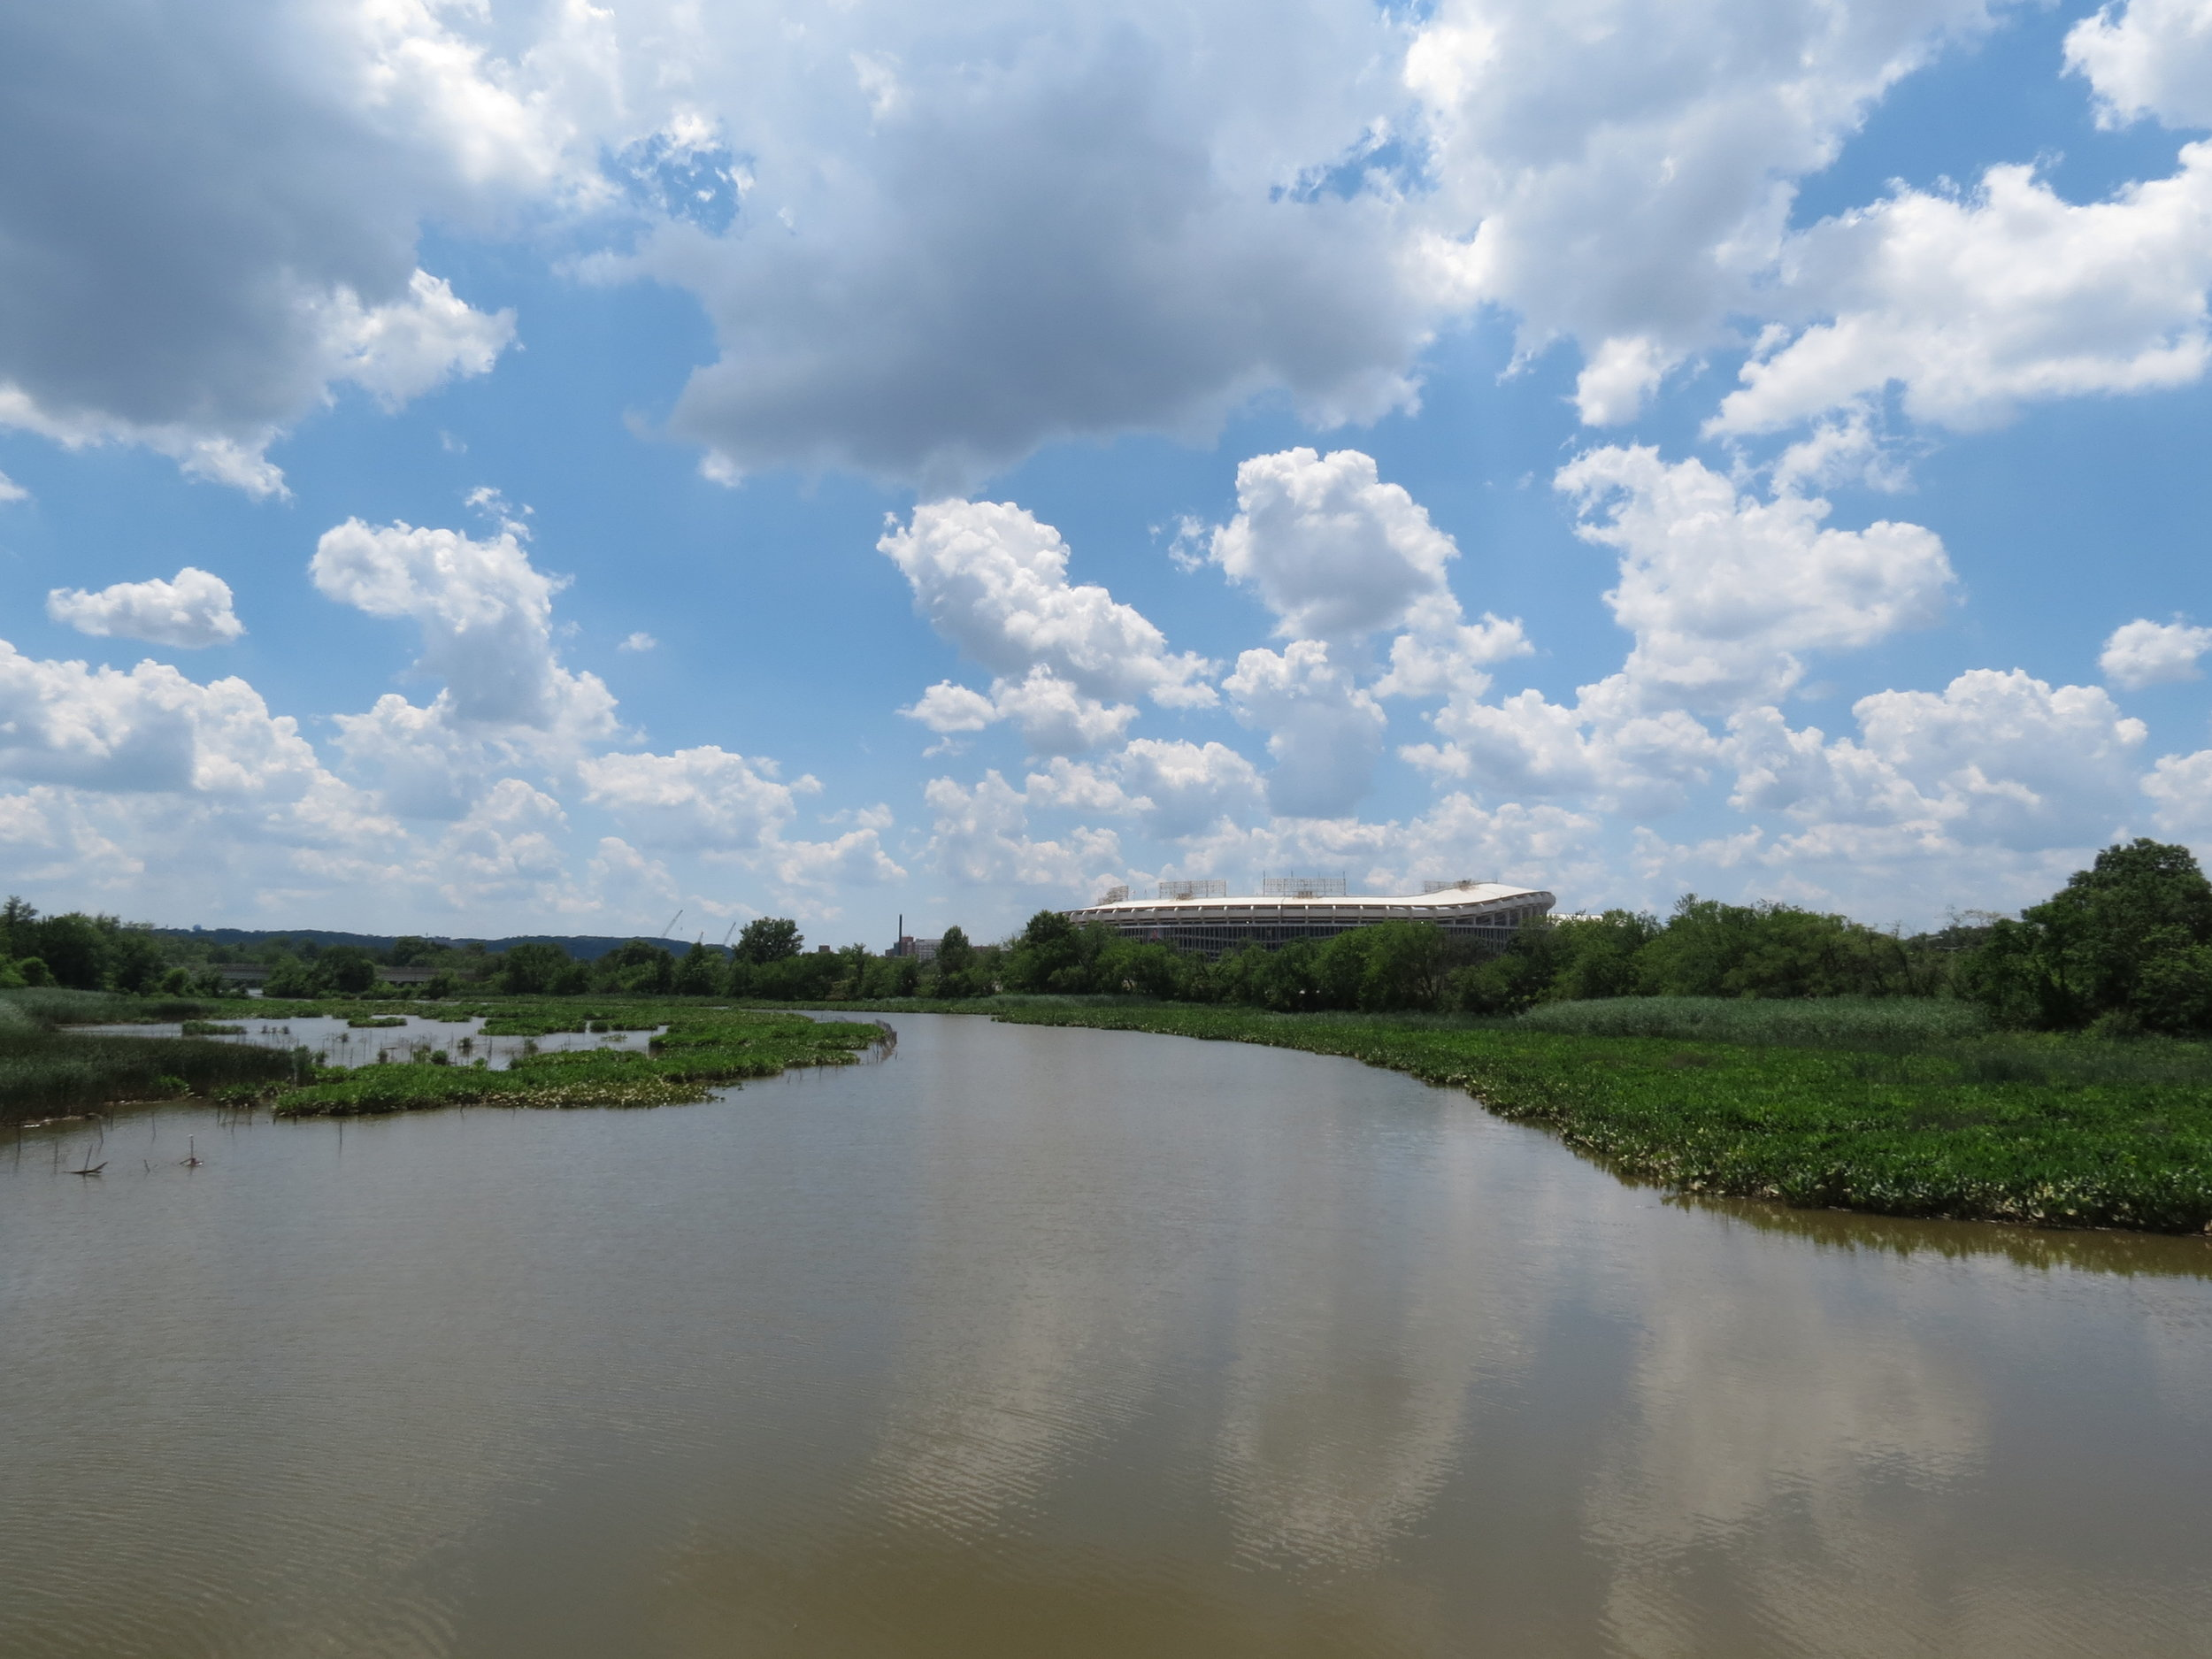 By  Katja Schulz  from Washington, D. C., USA (Anacostia River near Heritage Island) [CC BY 2.0 (https://creativecommons.org/licenses/by/2.0)], via Wikimedia Commons